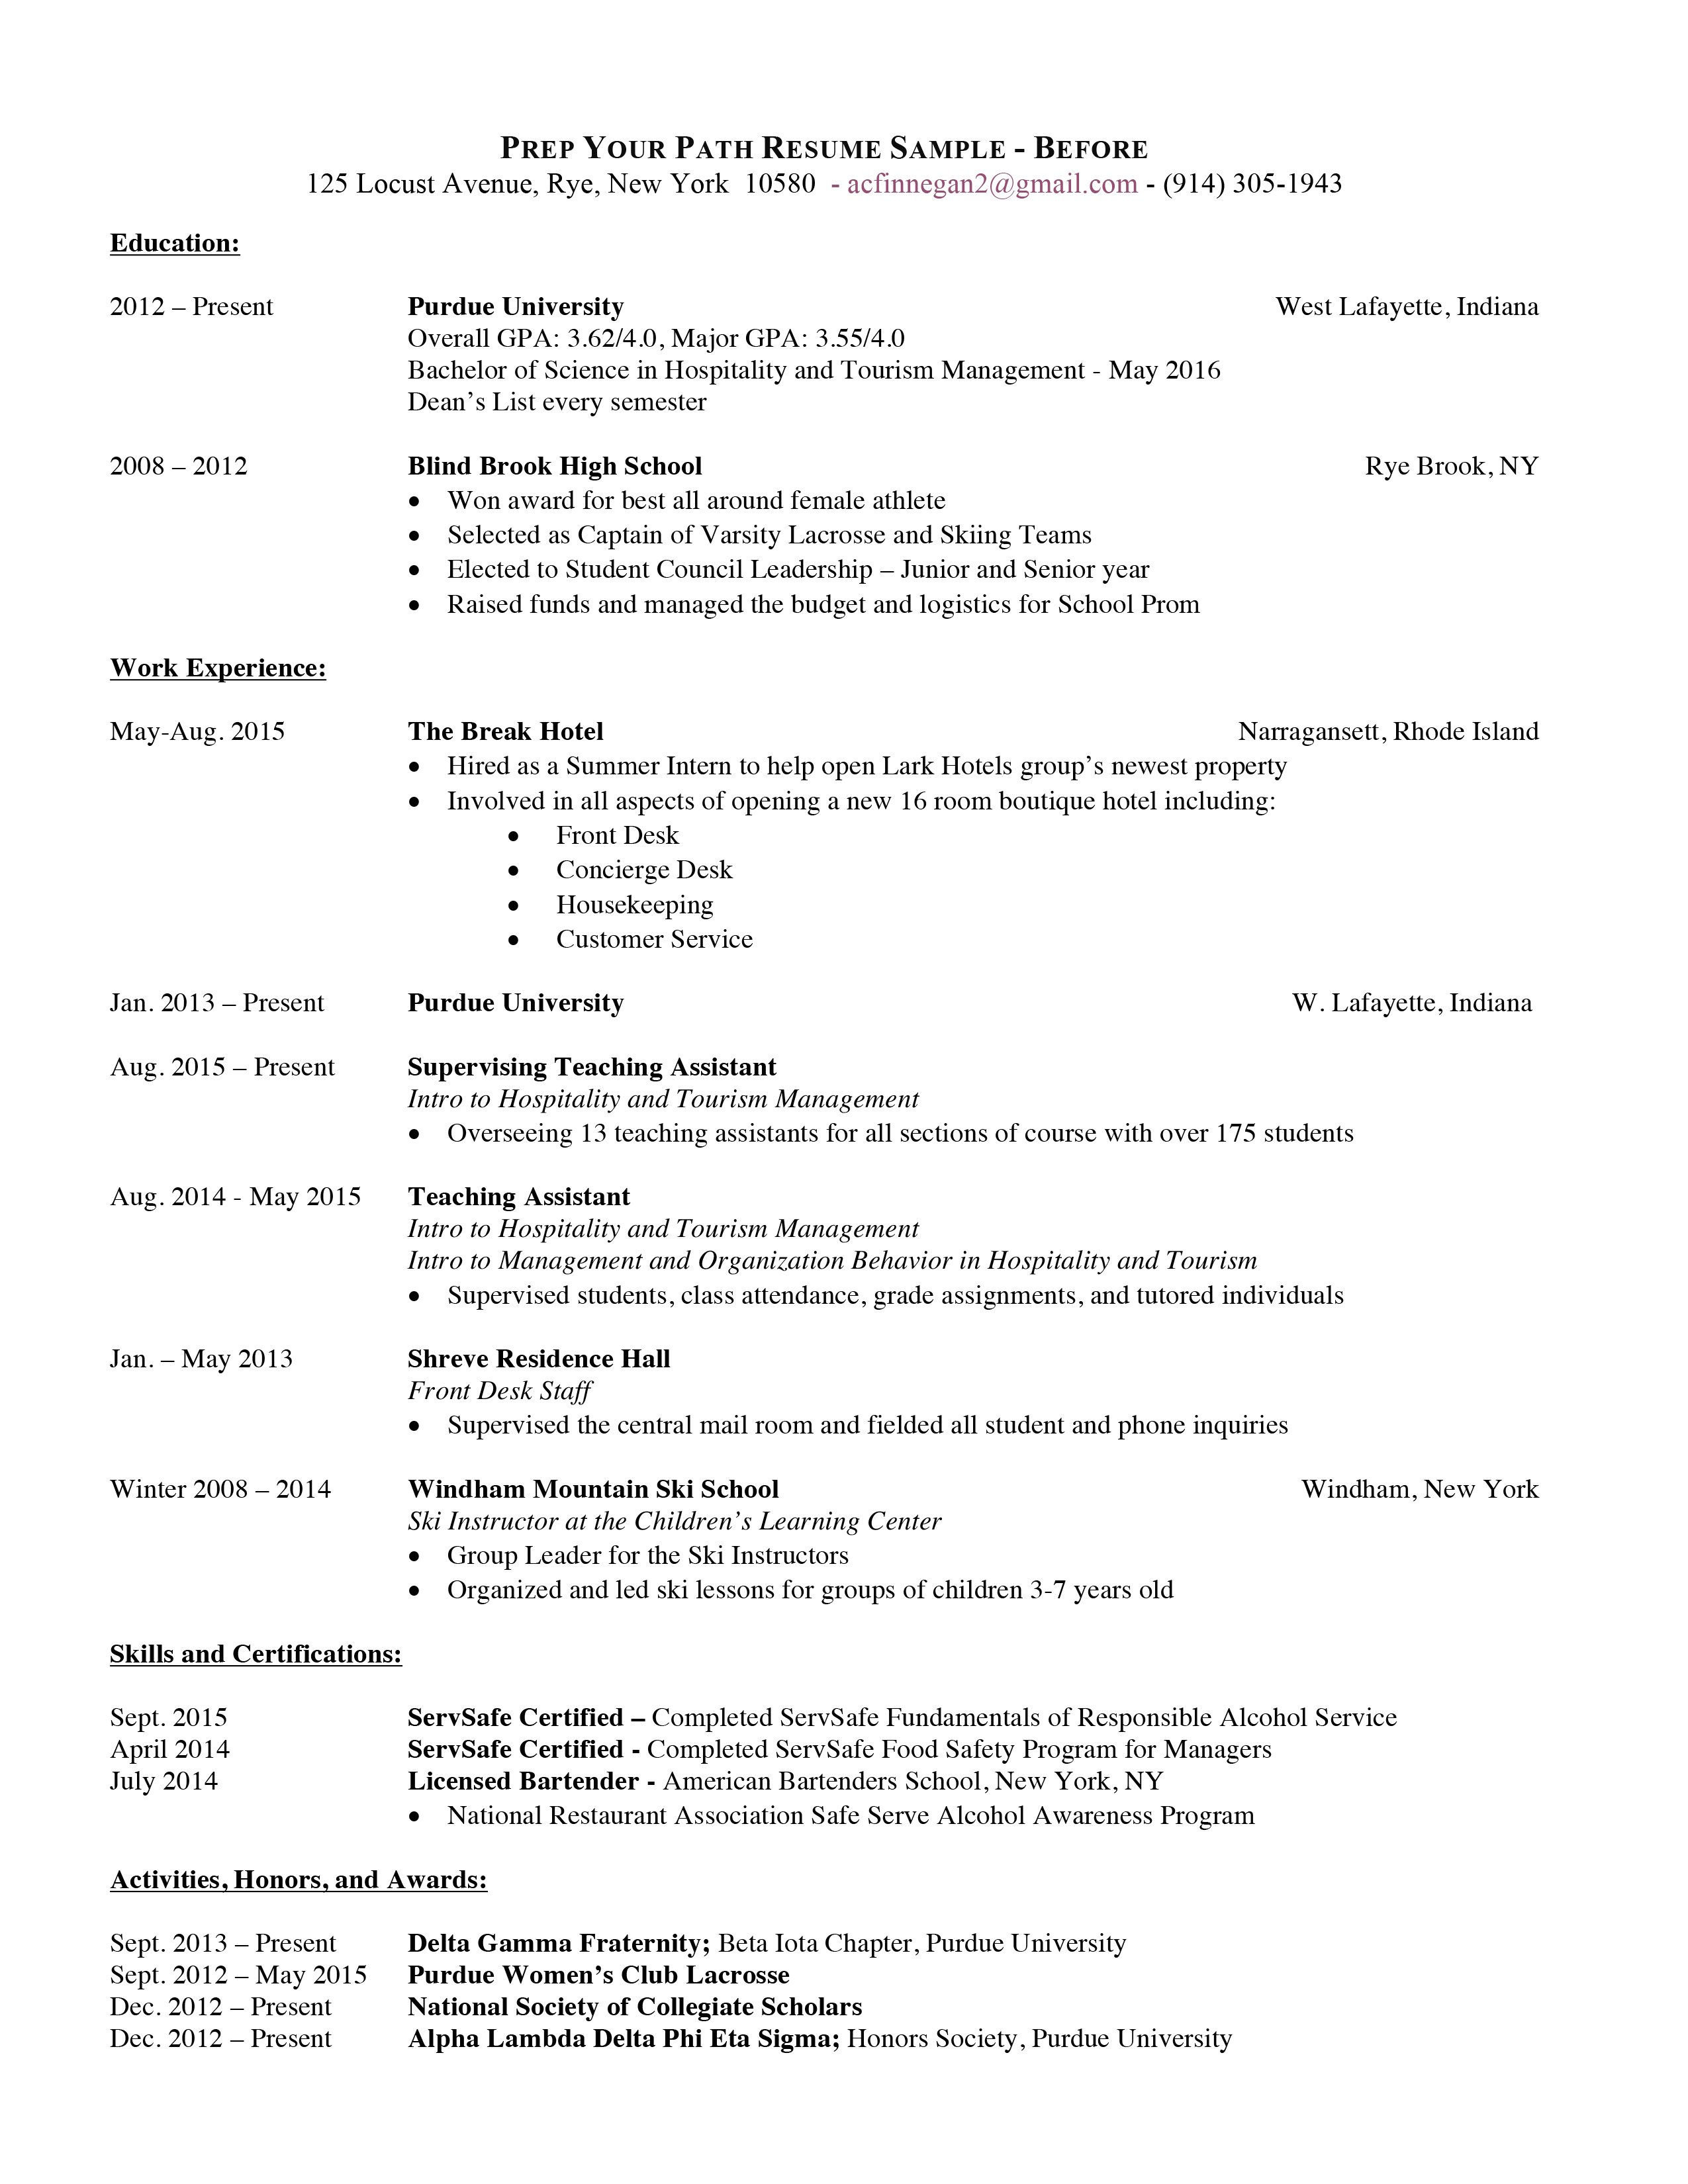 Professional Resume - Before